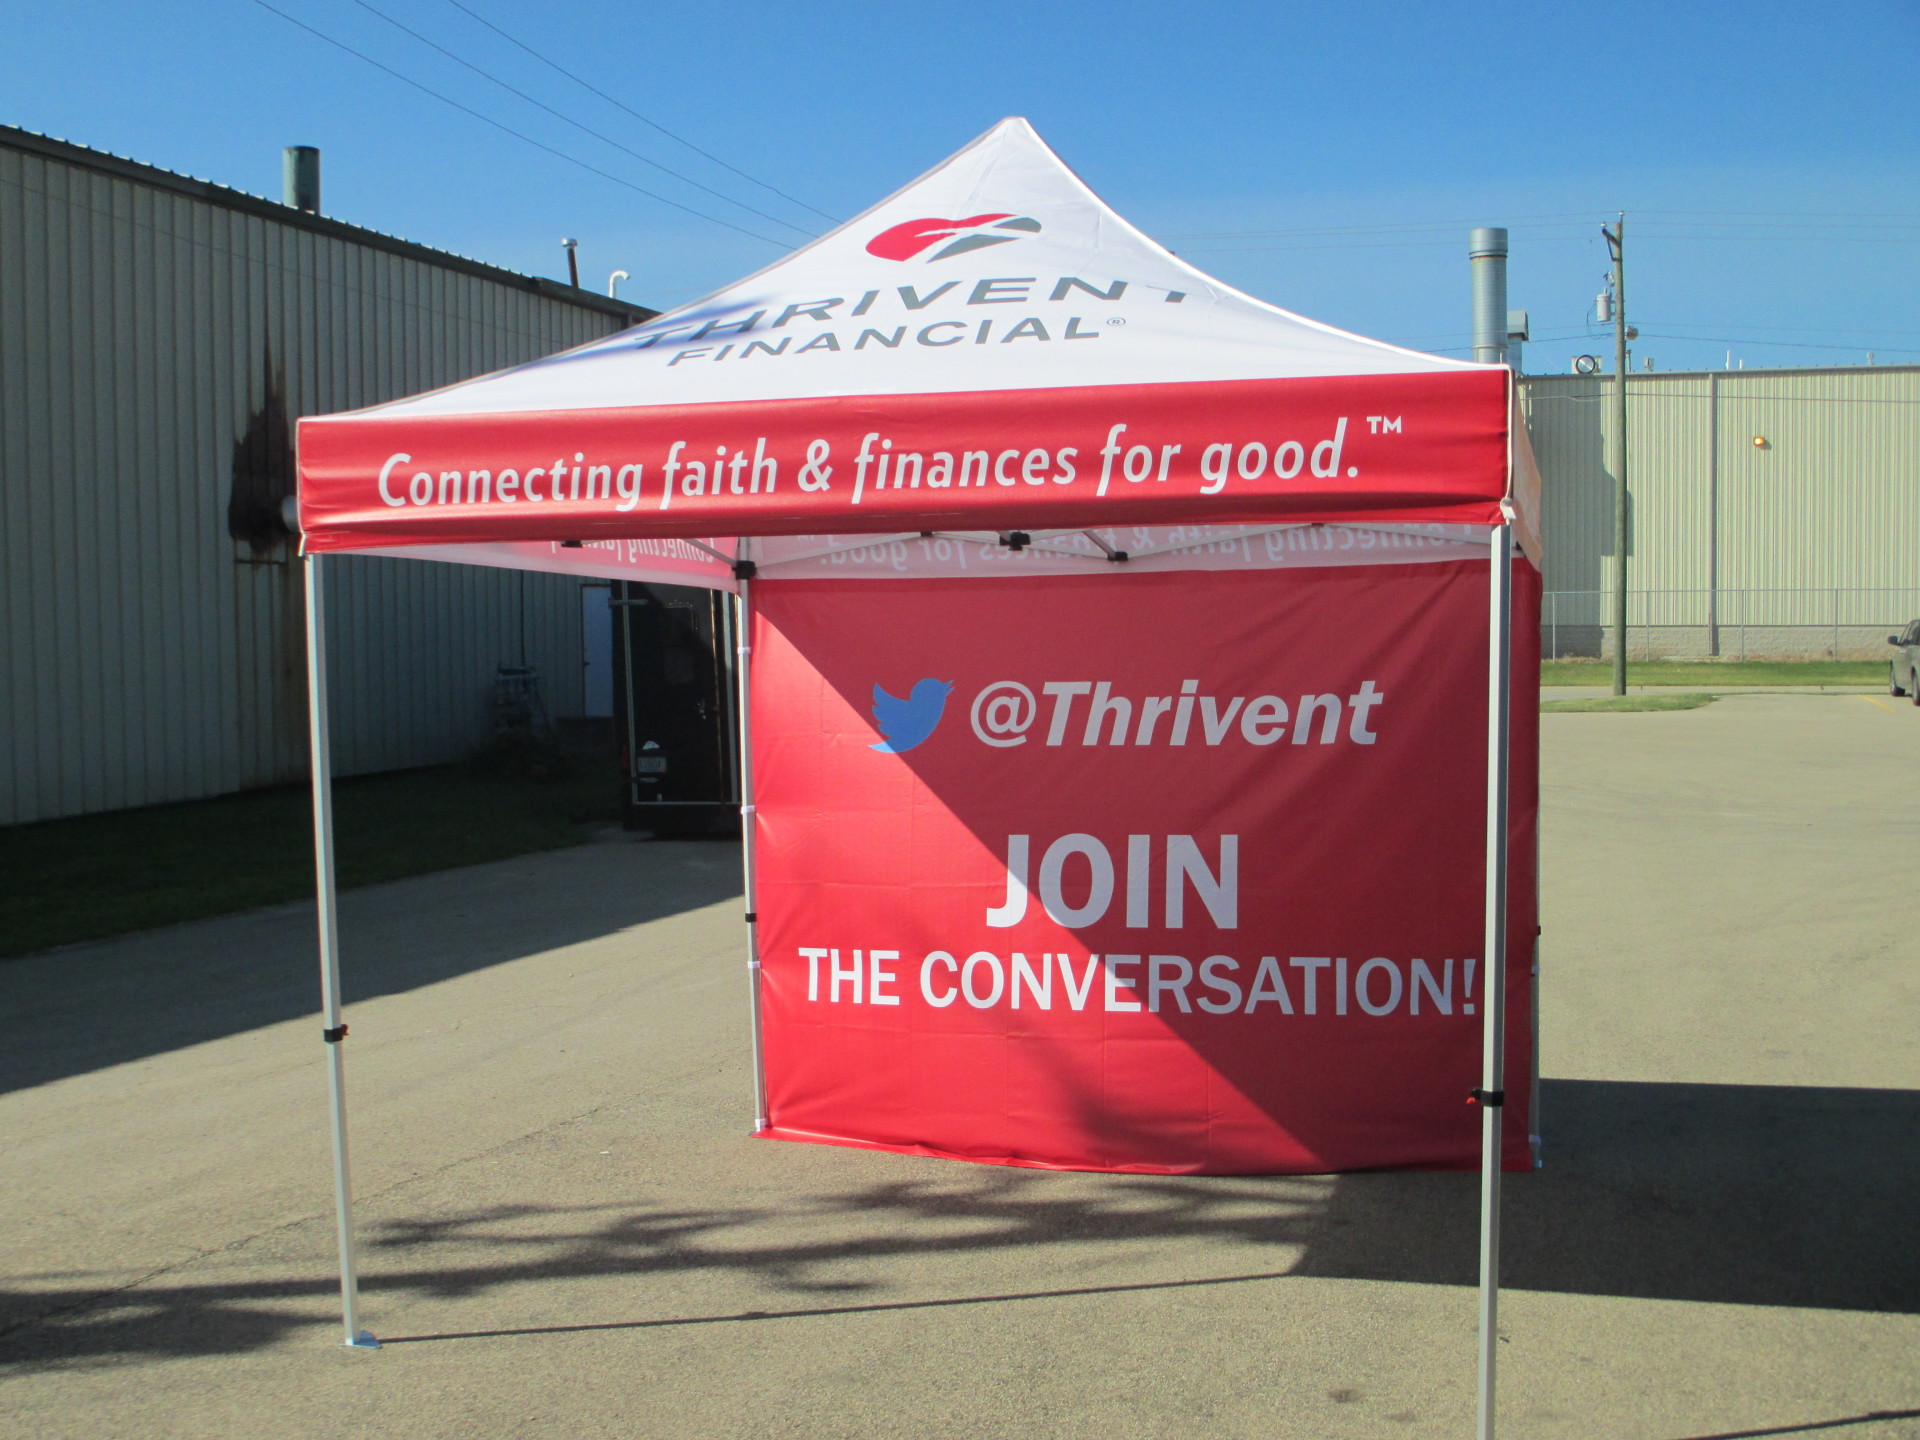 Tents and banners for your next event will get you noticed!